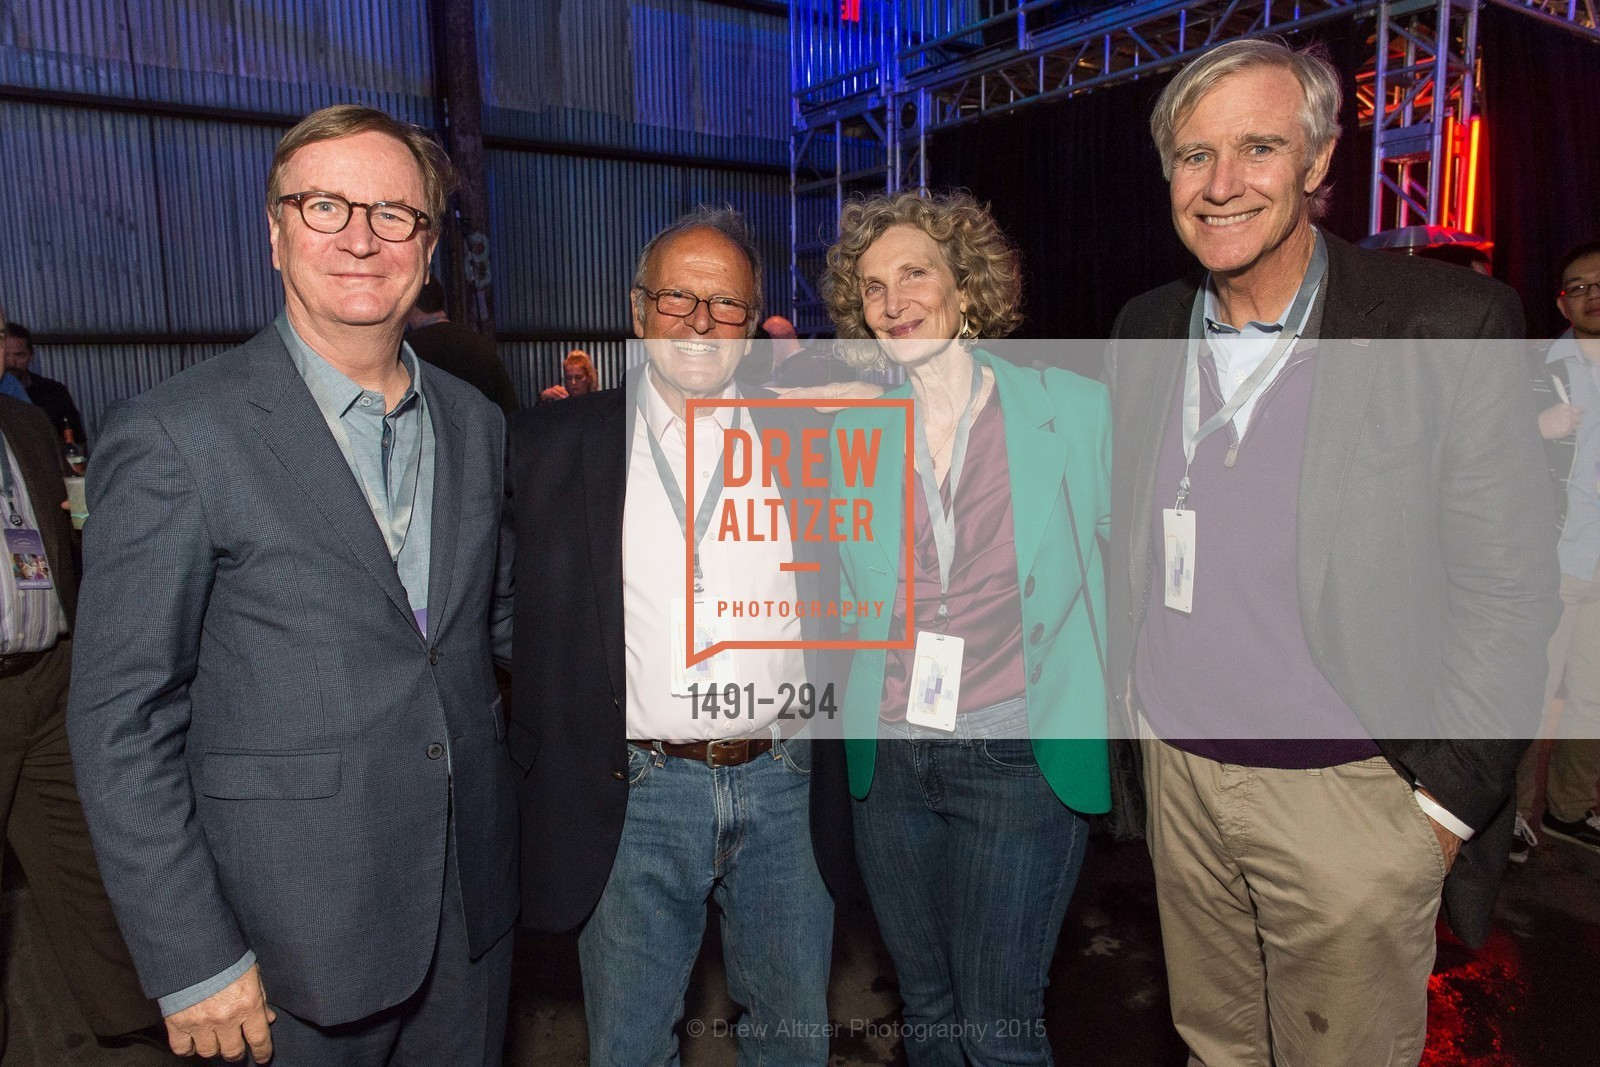 Sam Hawgood, Burt Lubin, Jillian Scharlach, Nathan Bier, The Concert For UCSF Benioff Children's Hospital, Pier 70, September 17th, 2015,Drew Altizer, Drew Altizer Photography, full-service agency, private events, San Francisco photographer, photographer california